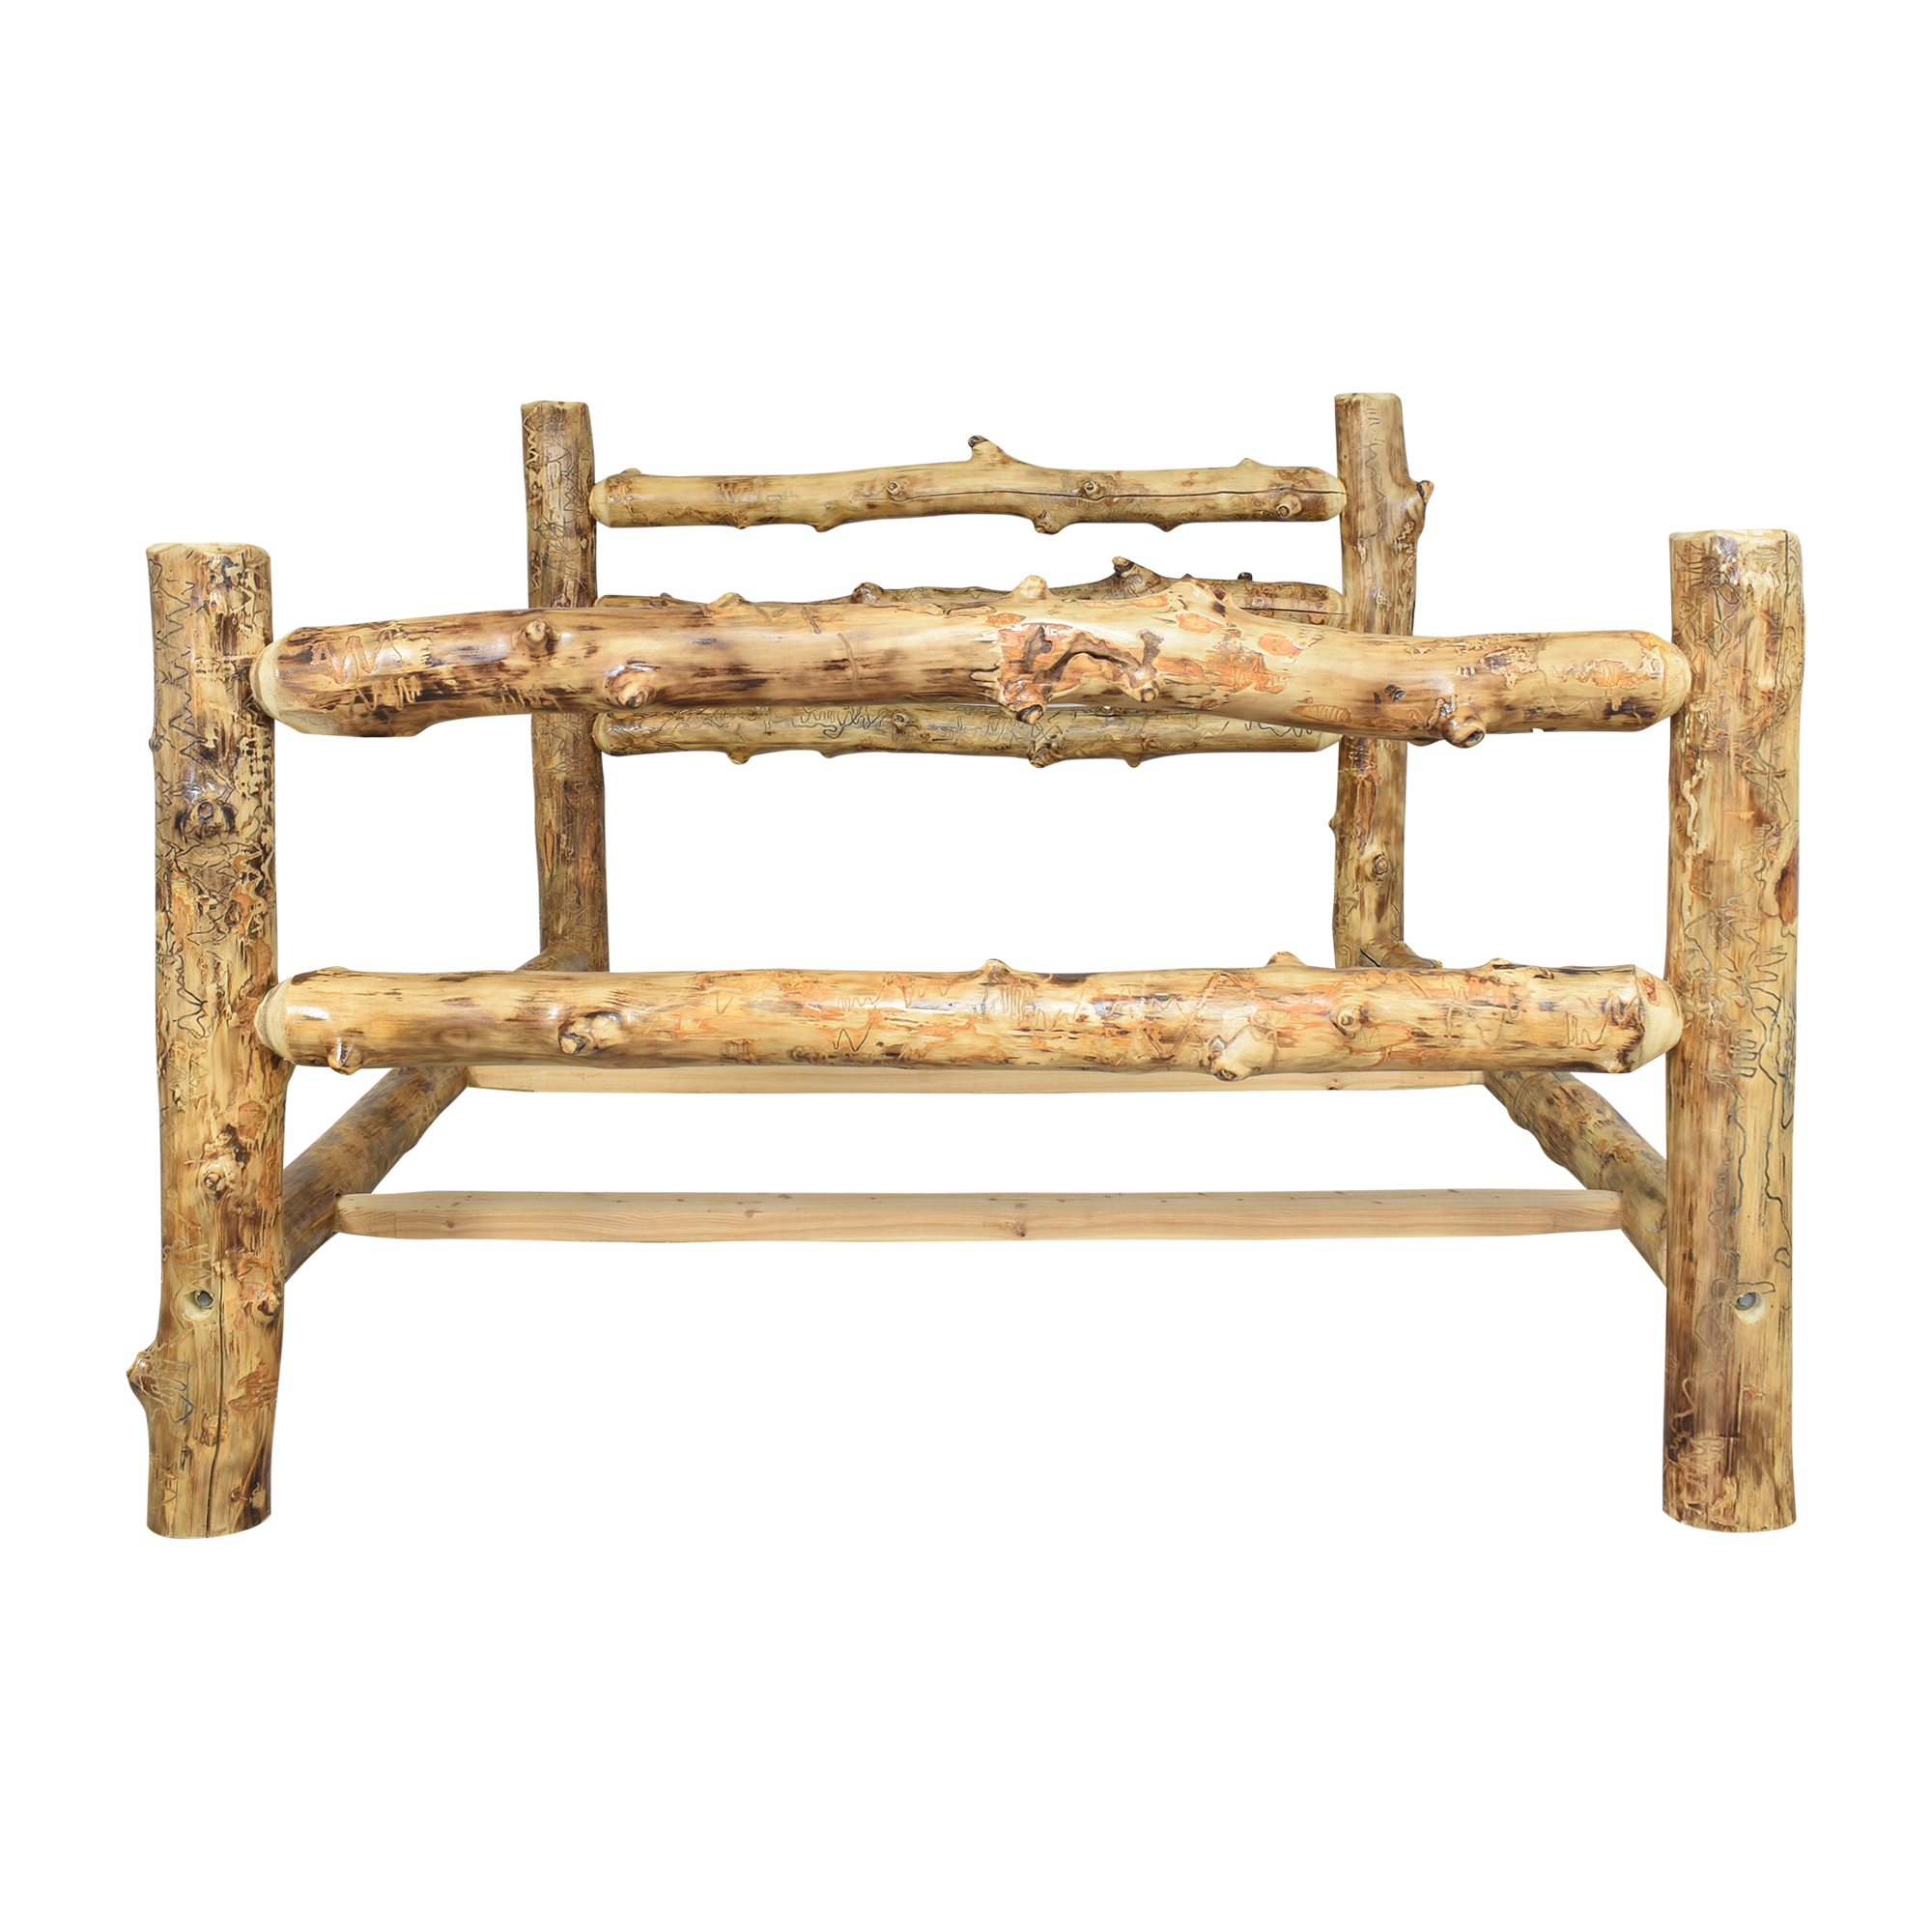 The Good Timber The Good Timber Corral Queen Bed second hand